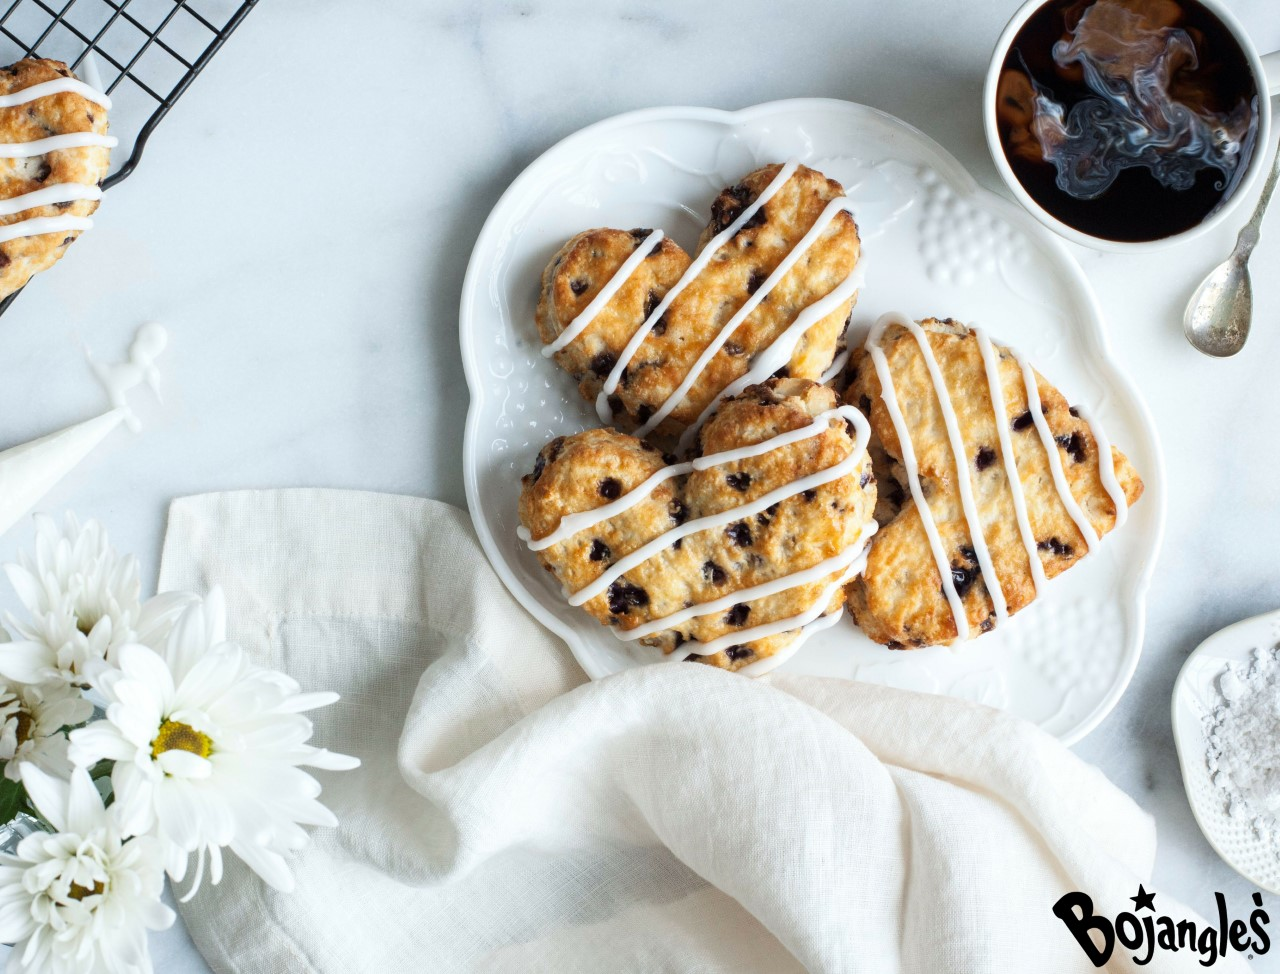 Bojangles' Heart-Shaped Biscuits